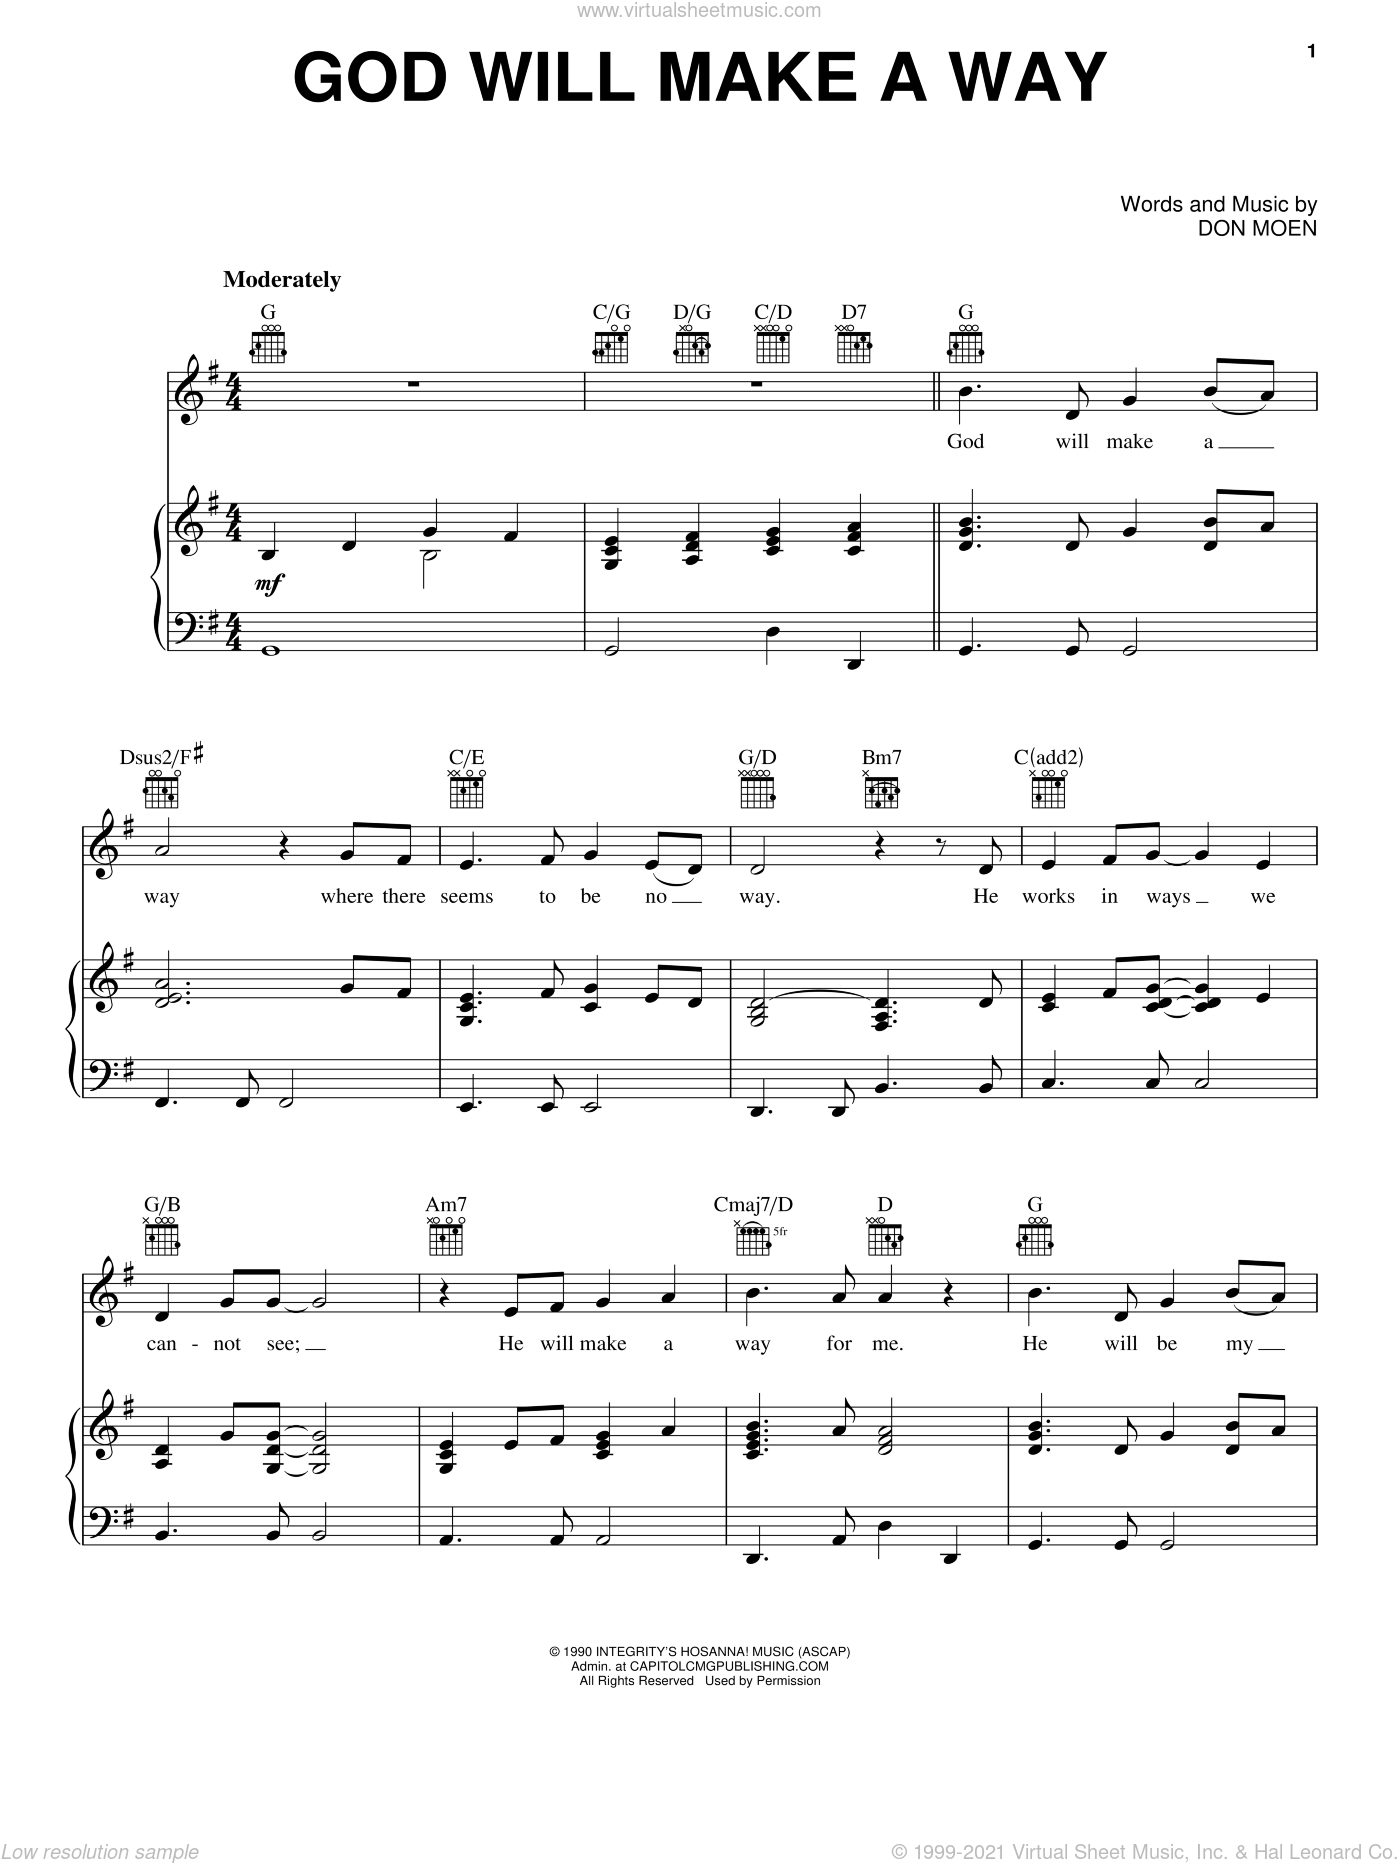 God Will Make A Way sheet music for voice, piano or guitar by Don Moen, intermediate skill level